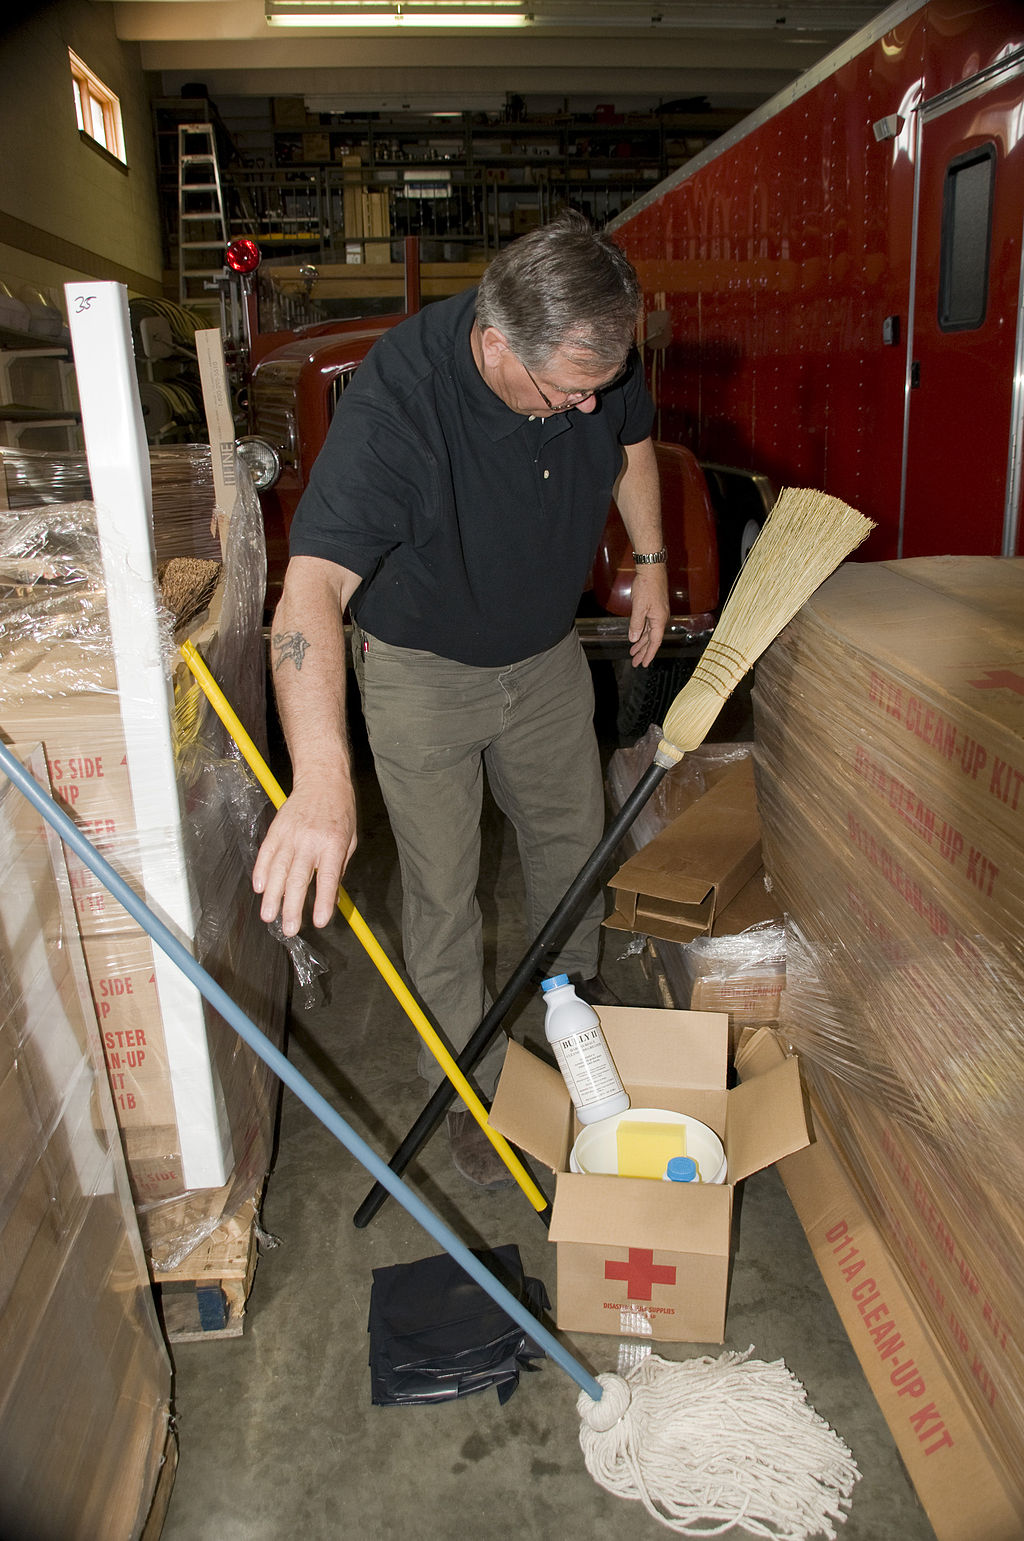 FEMA_-_40861_-_Devils_Lake_Fire_Chief_looks_at_cleaning_supplies_that_were_donated_by_the_Red_Cross